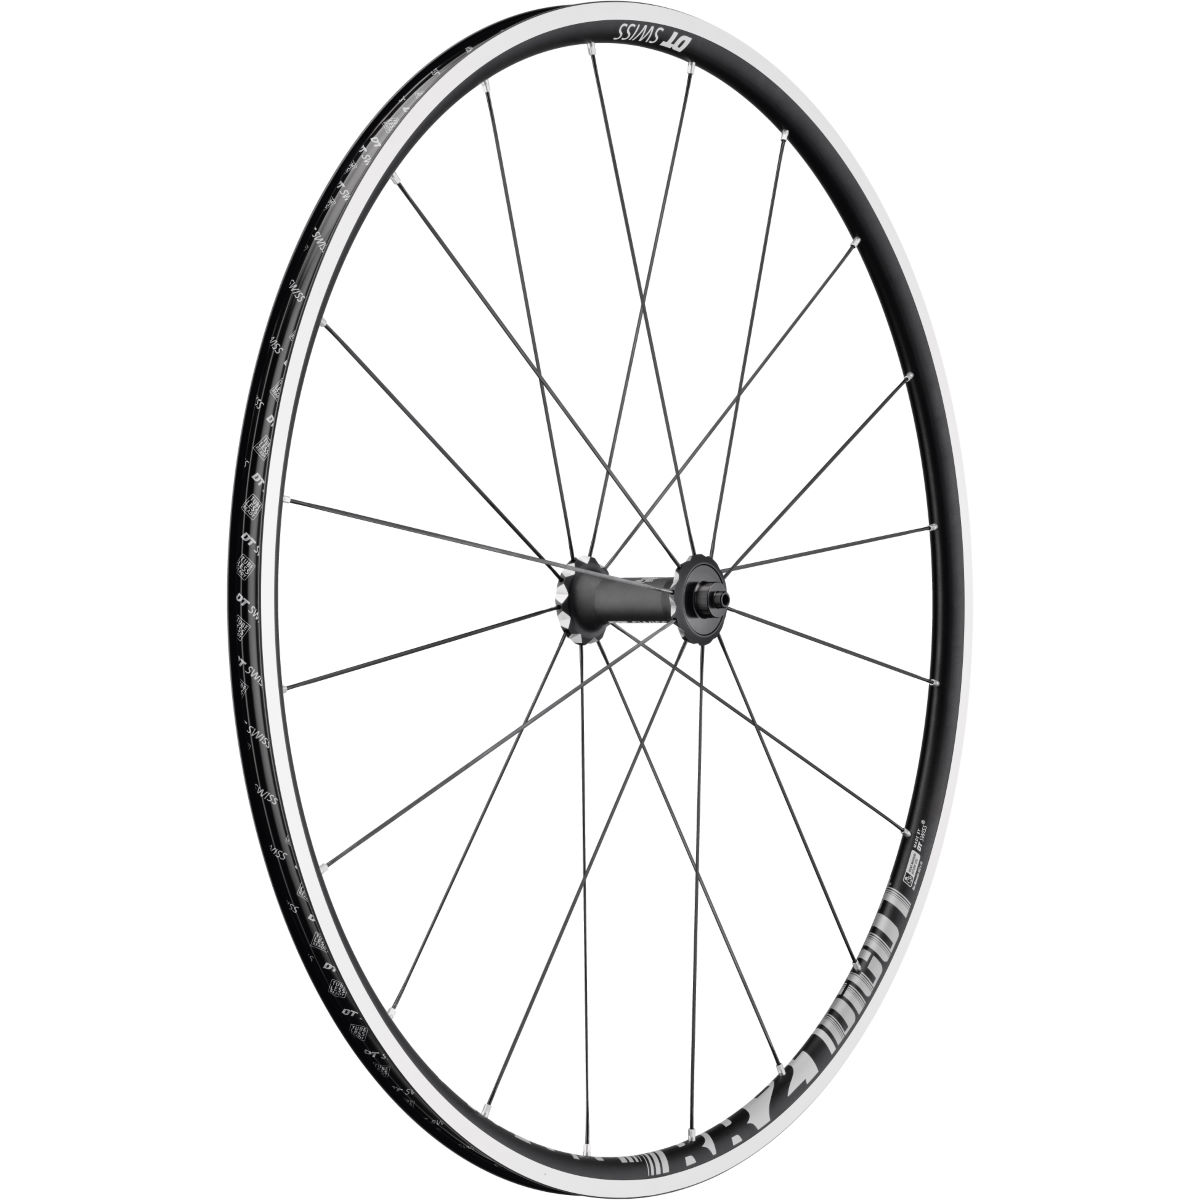 Roue avant DT Swiss RR21 Dicut (alliage, jante large) - Front Noir Roues performance